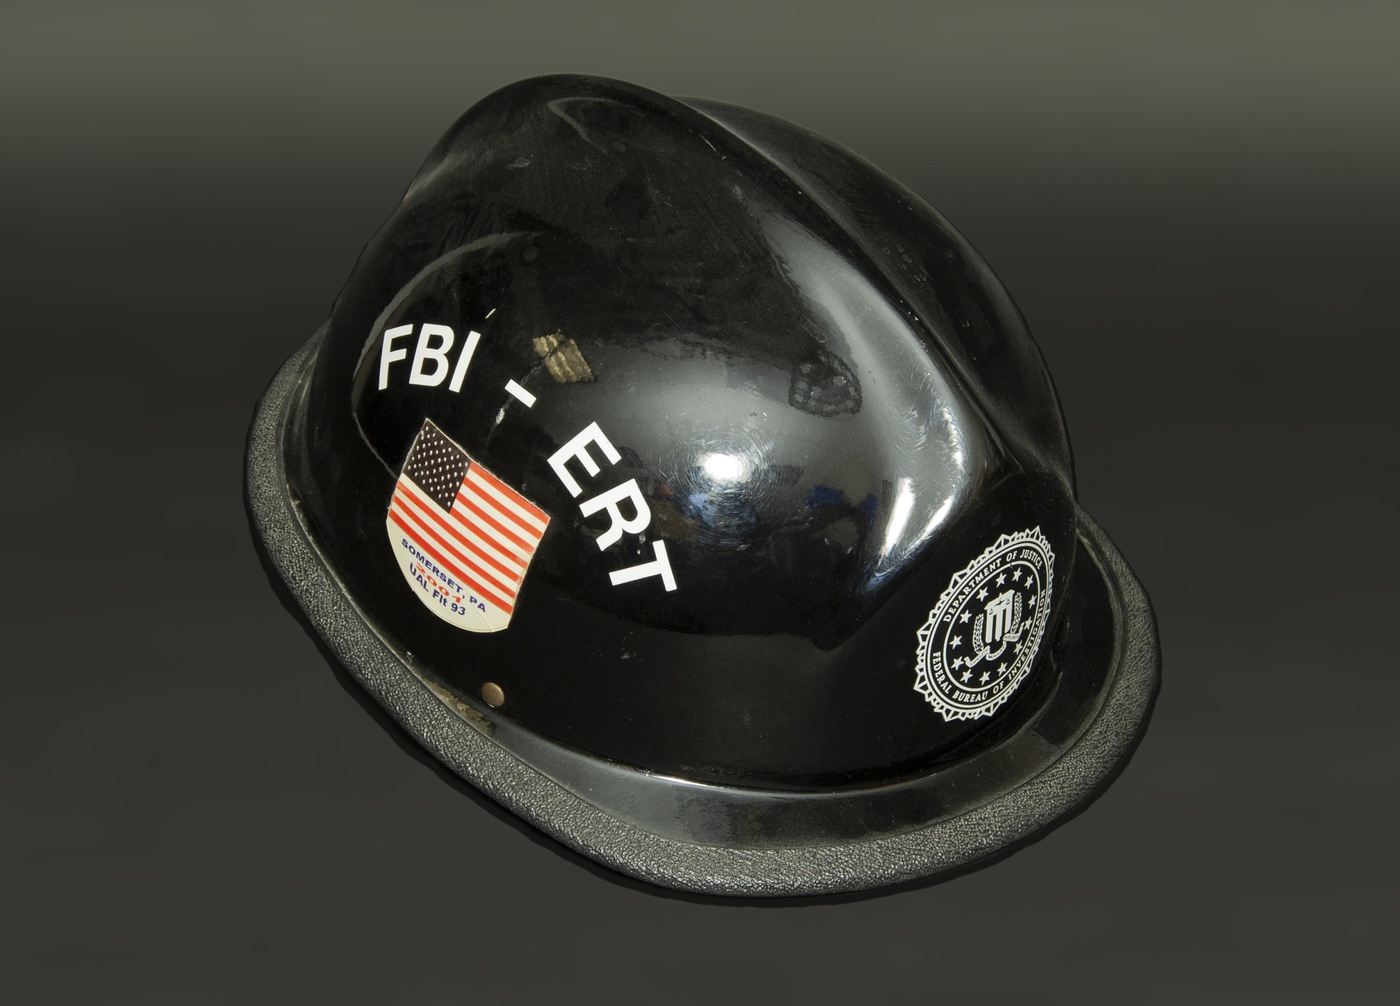 The FBI's September Artifact of the Month is a black hard hat that a 9/11 responder wore.